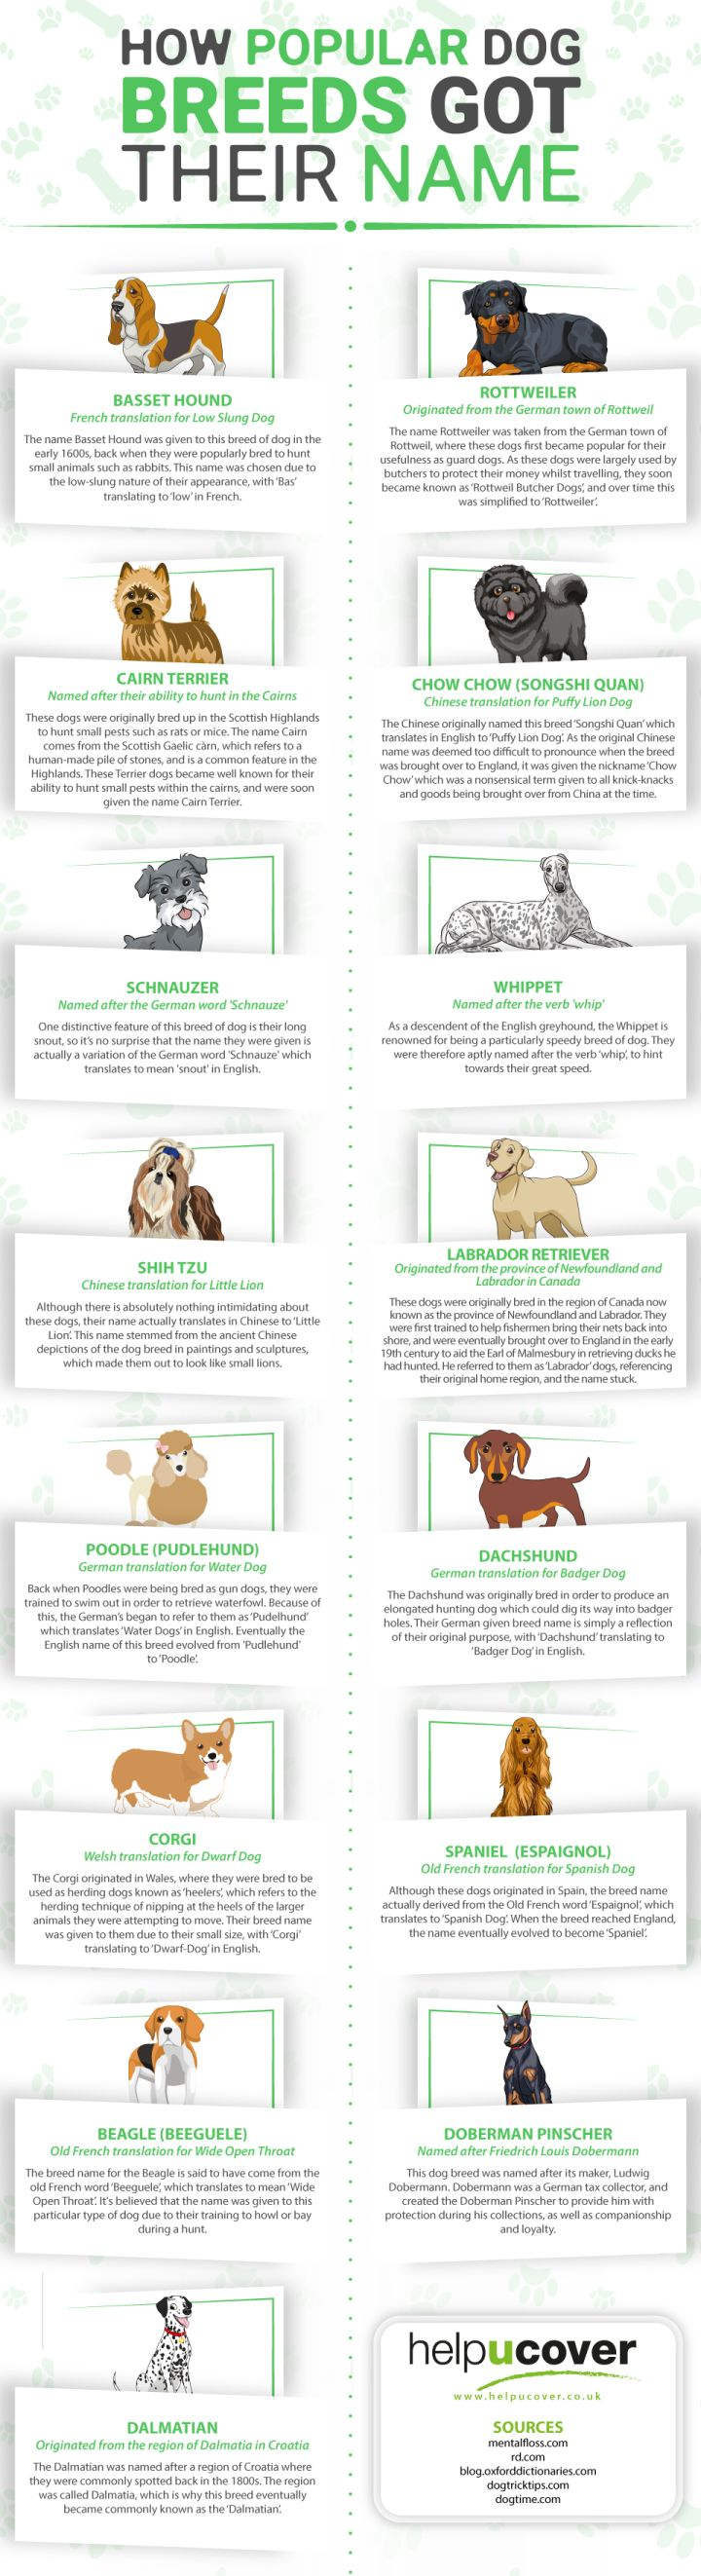 How Popular Dog Breeds Got Their Names Infographic